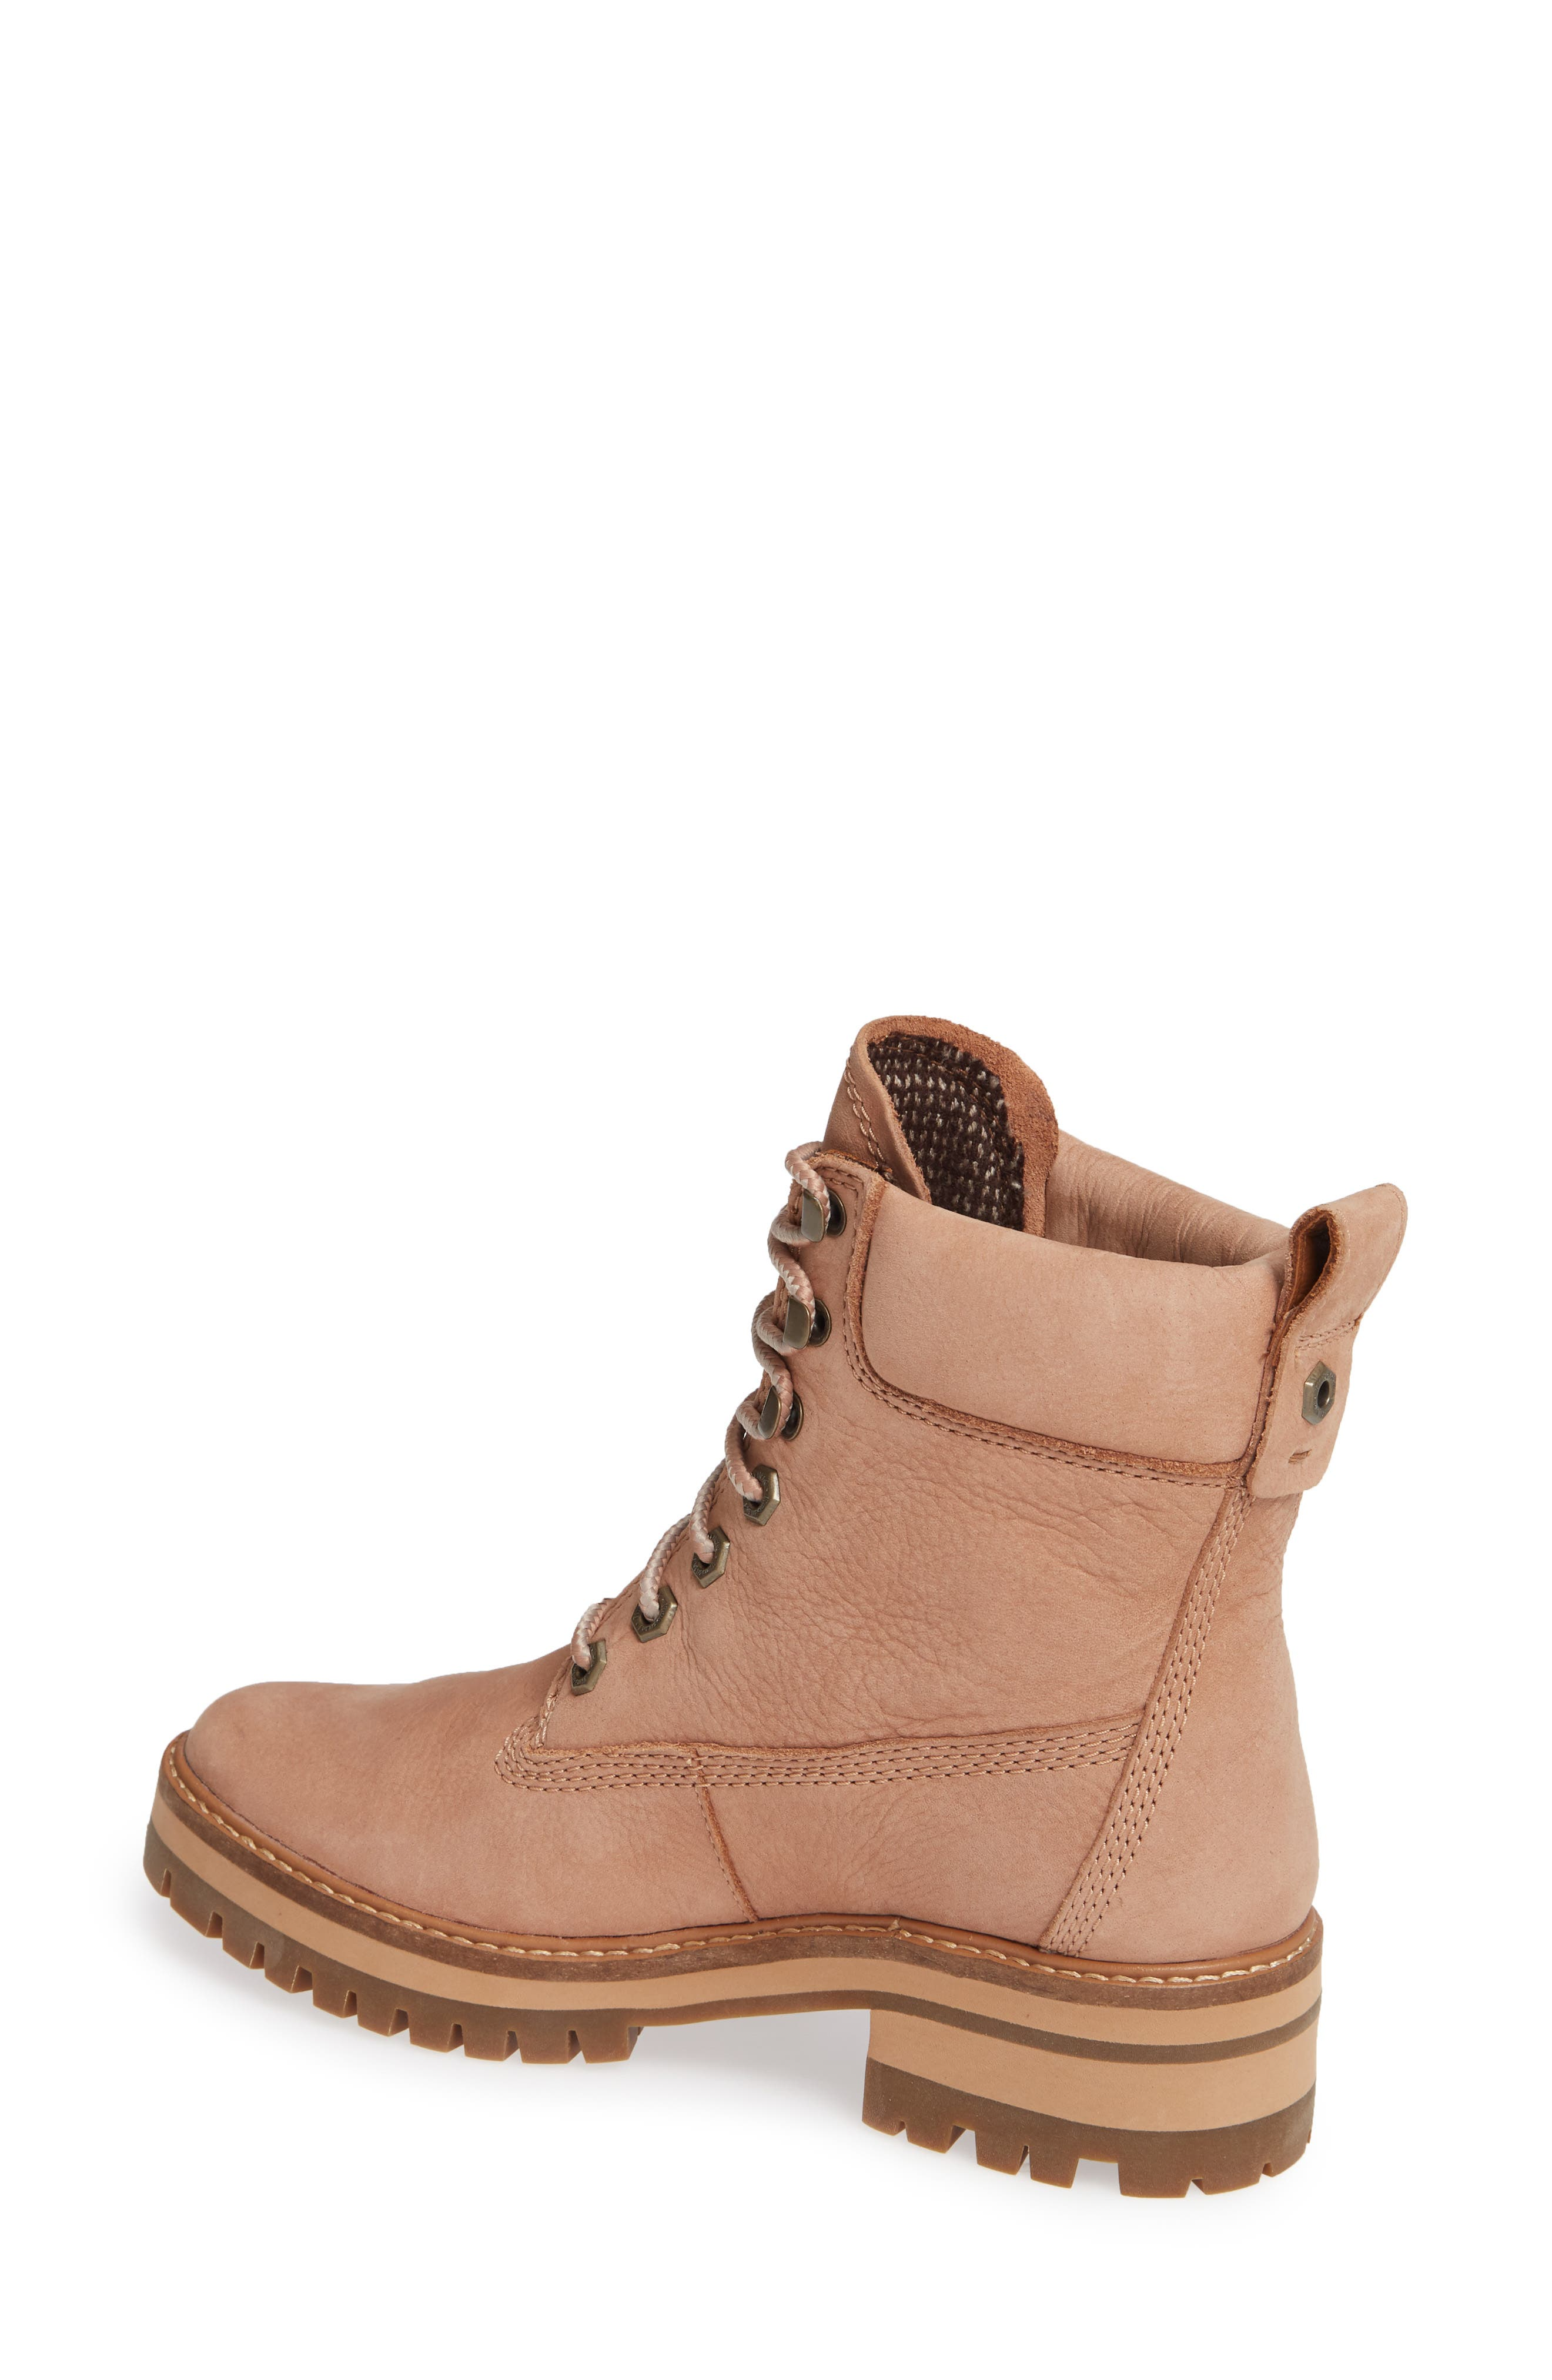 Courmayeur Valley Water Resistant Hiking Boot,                             Alternate thumbnail 2, color,                             TAWNY BROWN NUBUCK